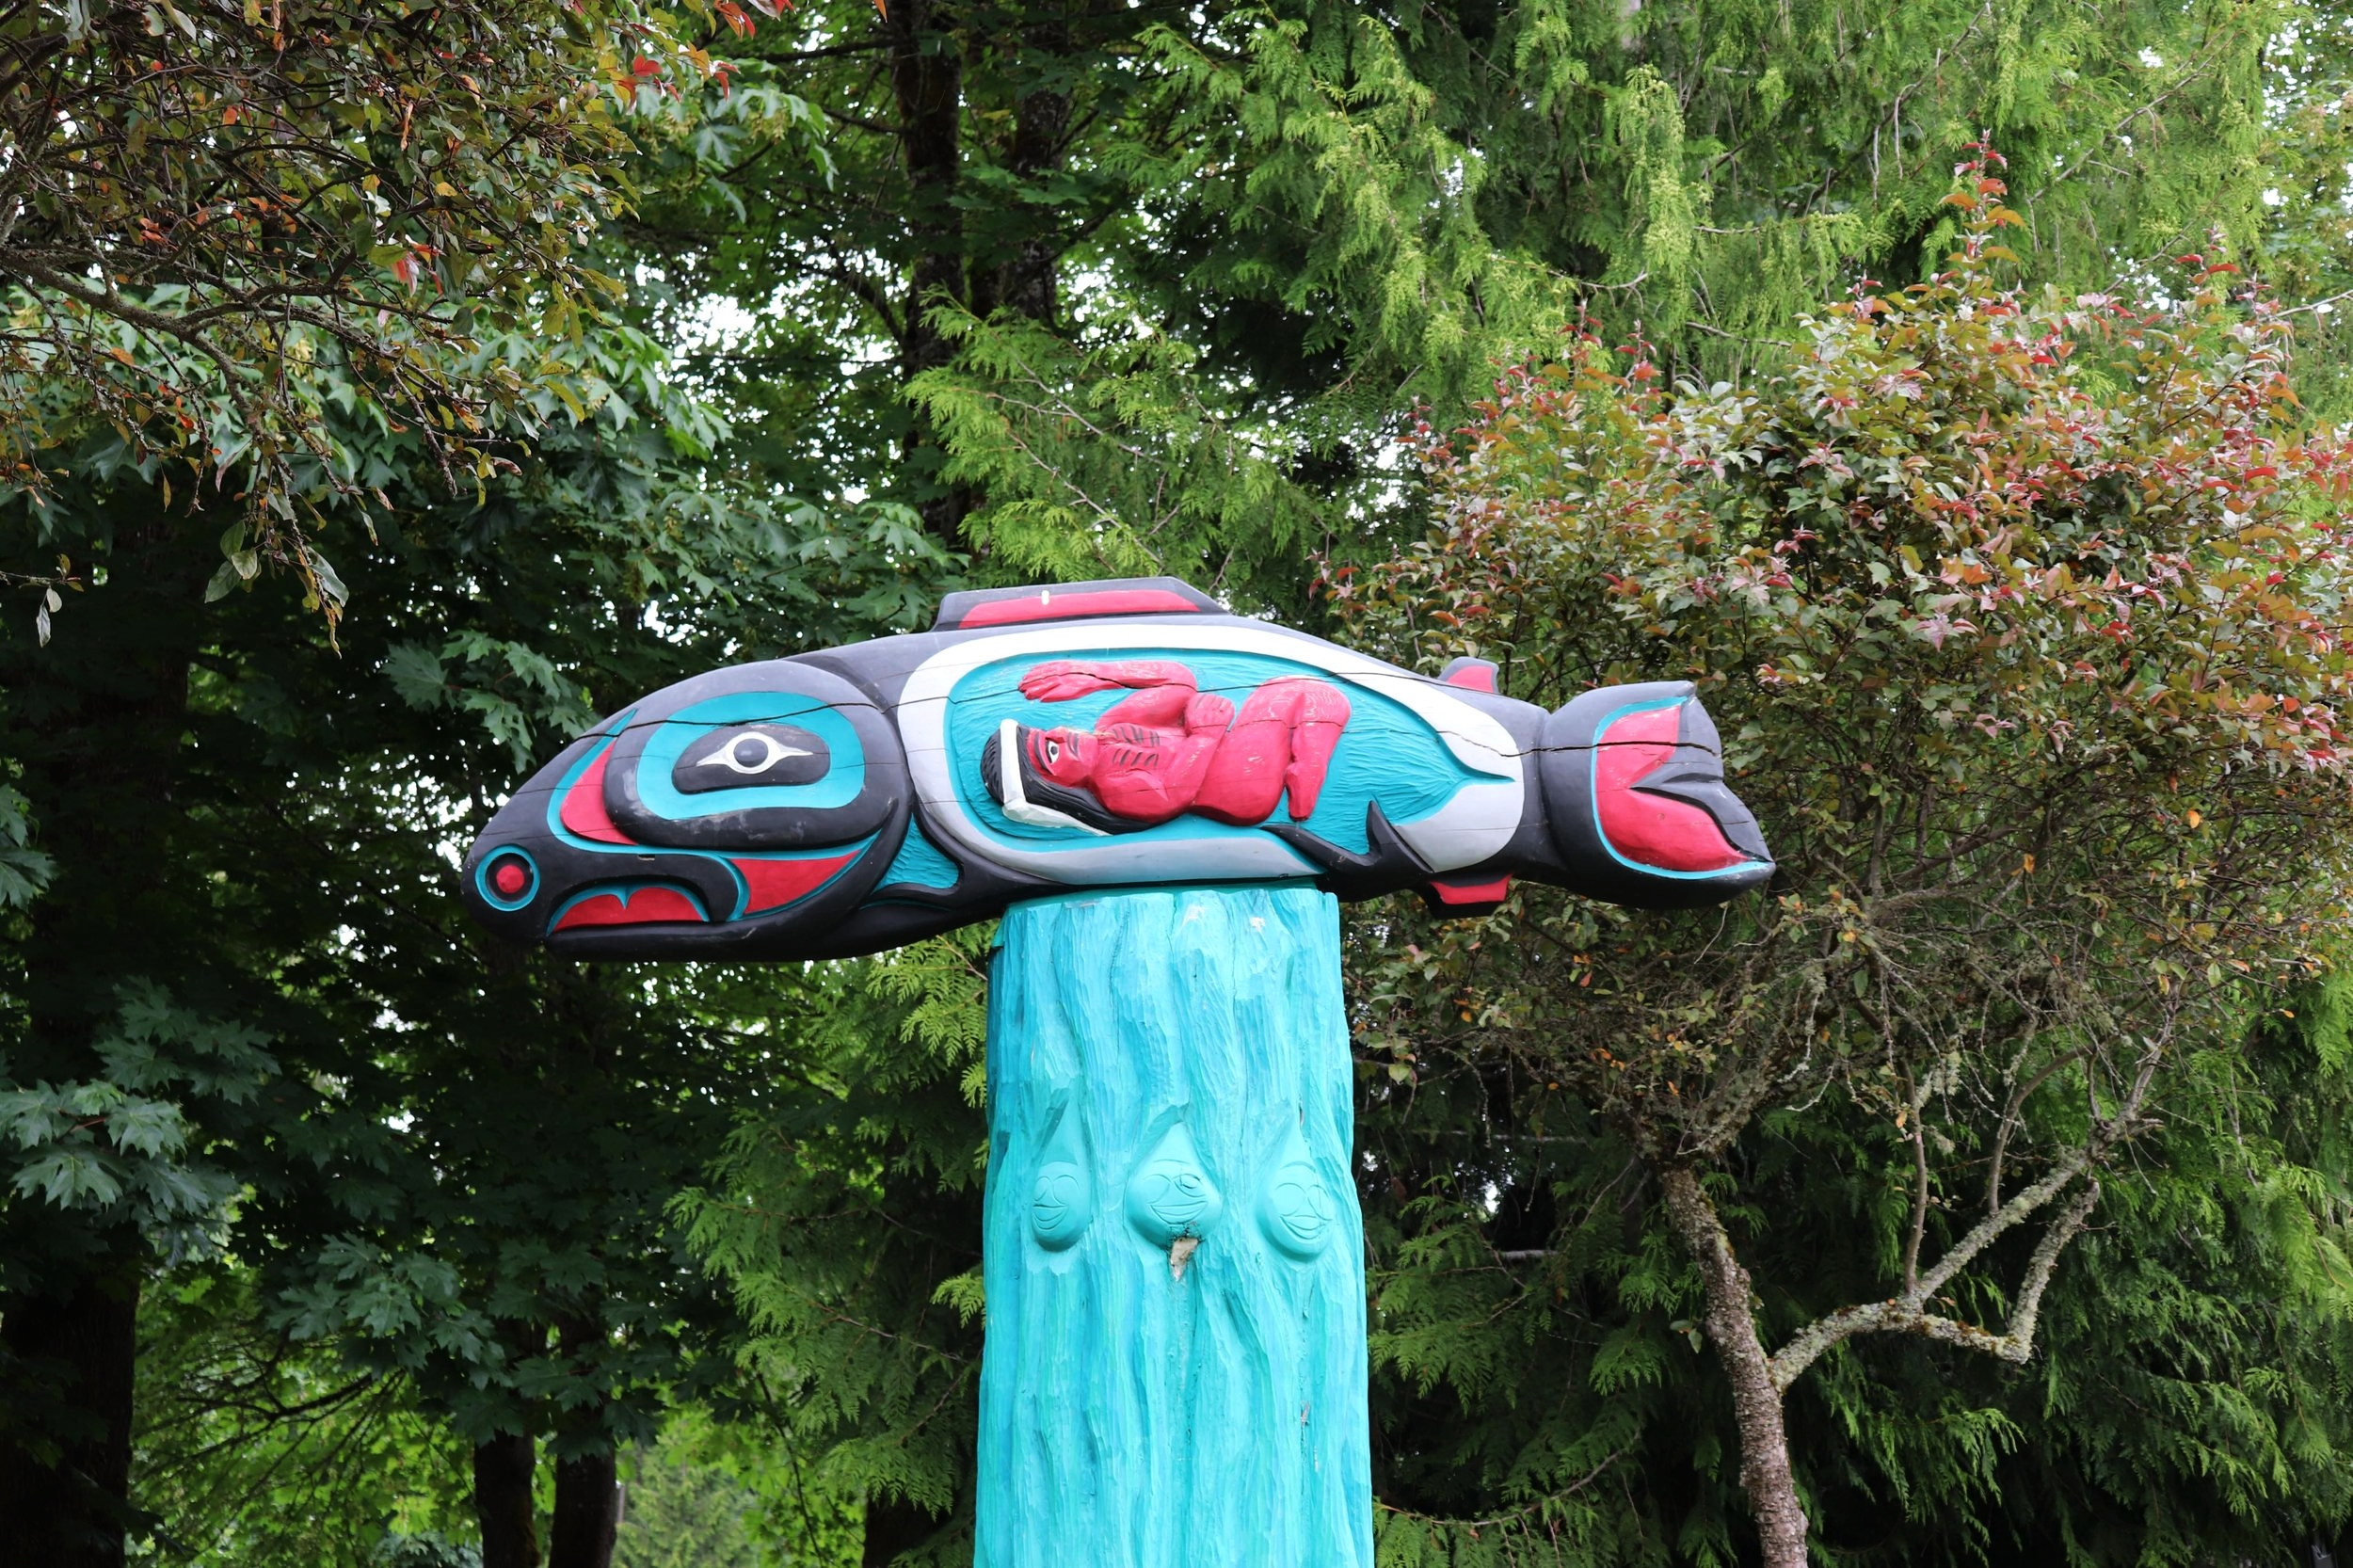 Totem on the grounds at Wa He Lut Indian School, Frank's Landing.    The school is located near the apex of the Nisqually delta and estuary, which adjoins the Puget Sound. The name, Wa He Lut, comes from a Nisqually warrior and medicine man whose power flowed from thunder and lightning. Wa He Lut Indian School was founded in 1974 by T. Maiselle Bridges and members of the Frank's Landing Indian Community. Their vision for the school was to ensure that Native American children would get funding for the education they were promised in the Medicine Creek treaty.